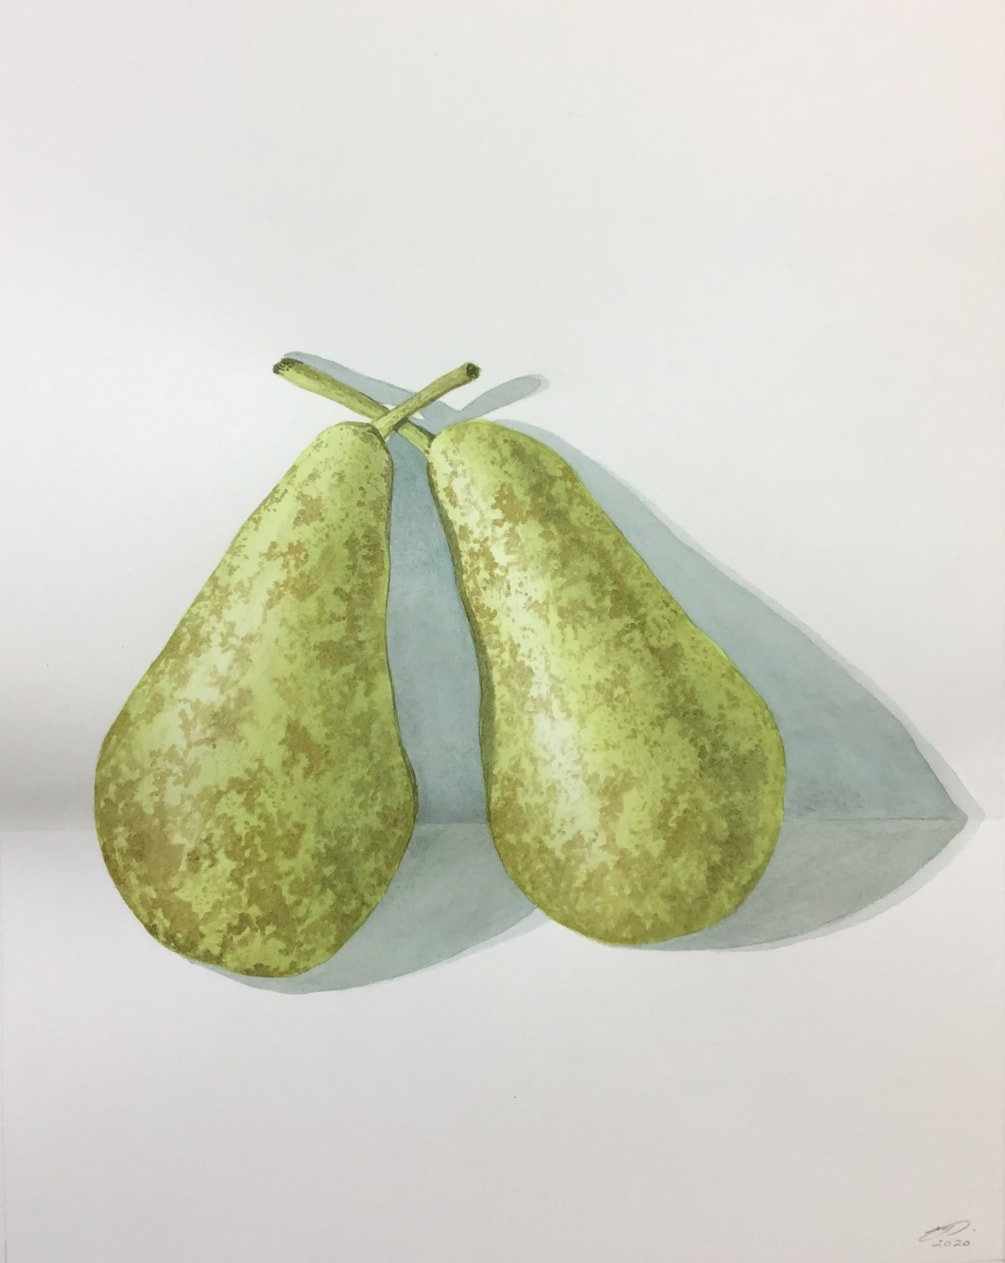 Commission - A pair of pears by Margaret Mallows